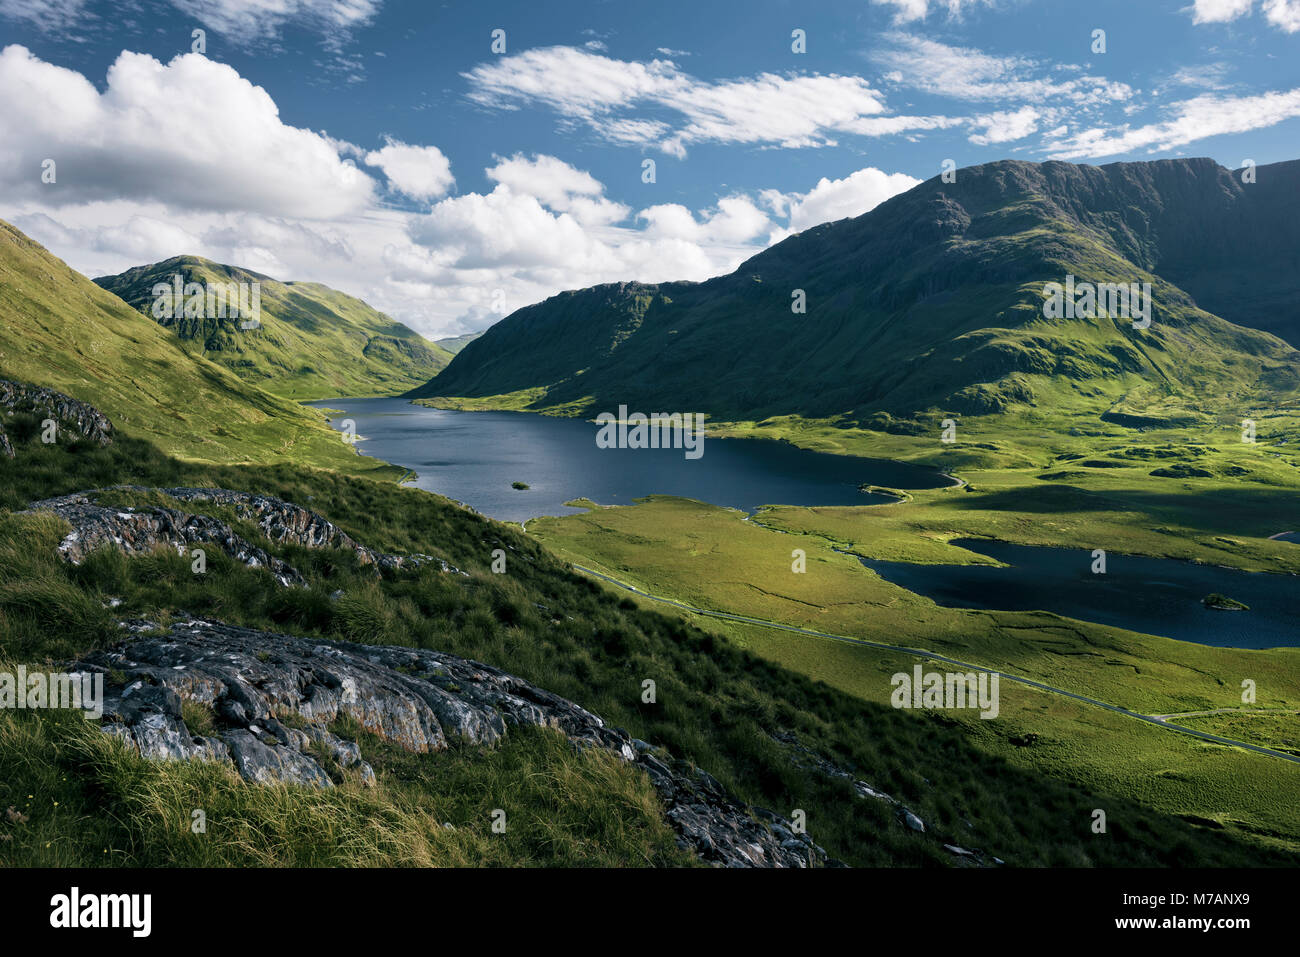 Gigantic view into the Doolough Valley, County Mayo, Ireland - Stock Image